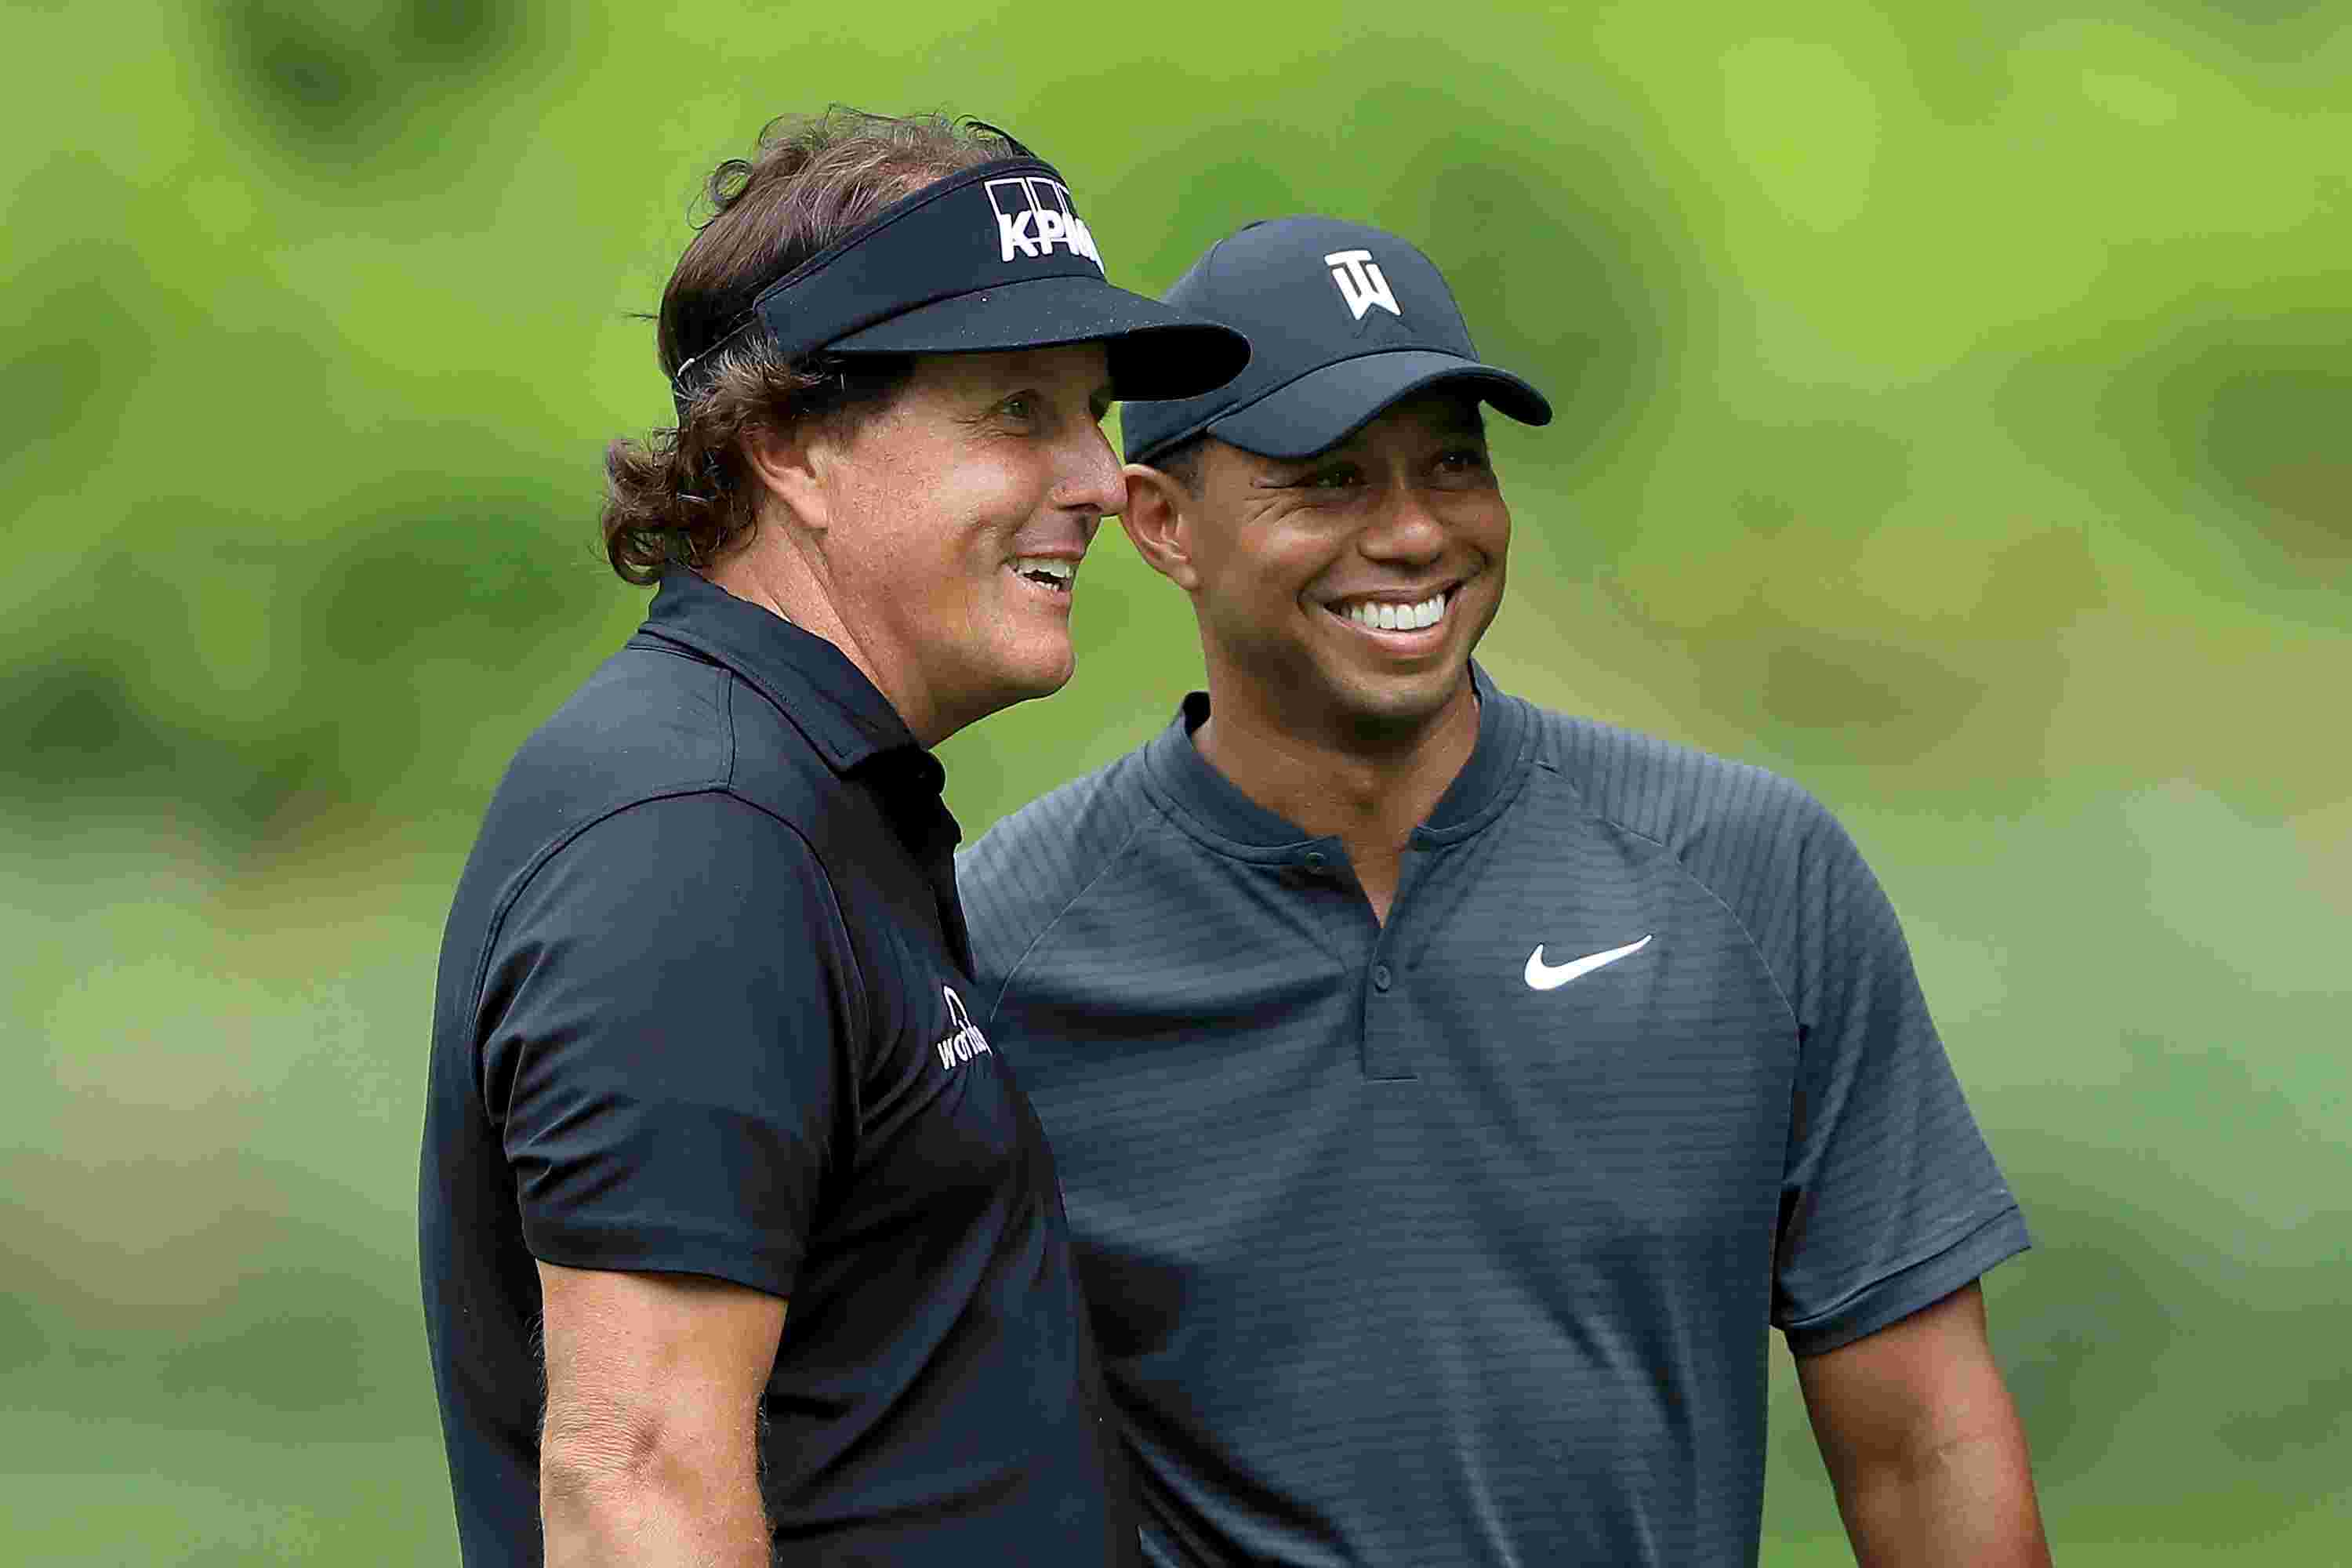 Tiger Woods Ryder Cup chances